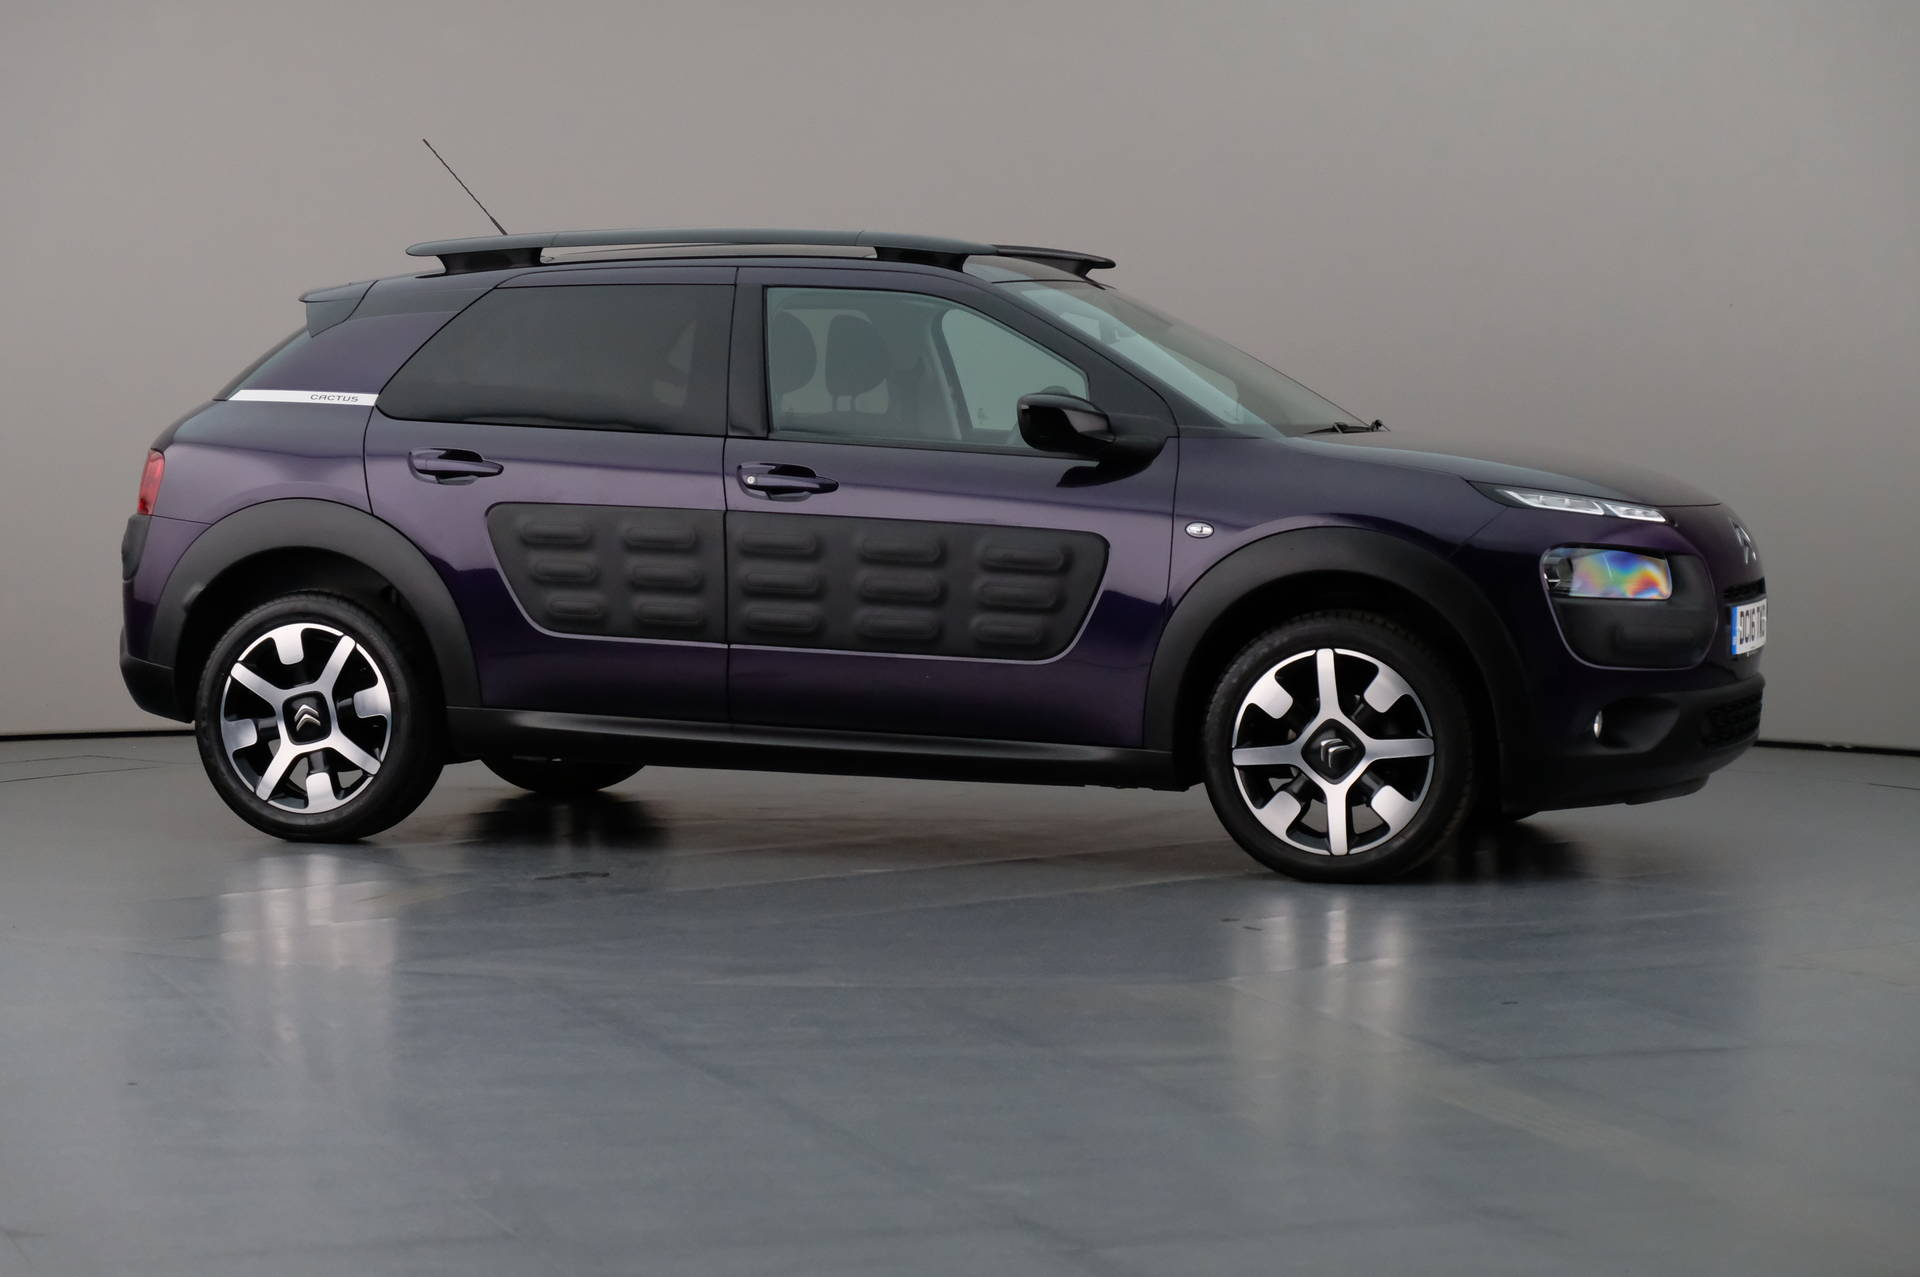 Citroën C4 Cactus 1.6 Blue HDi Flair Edition 5dr, 360-image33